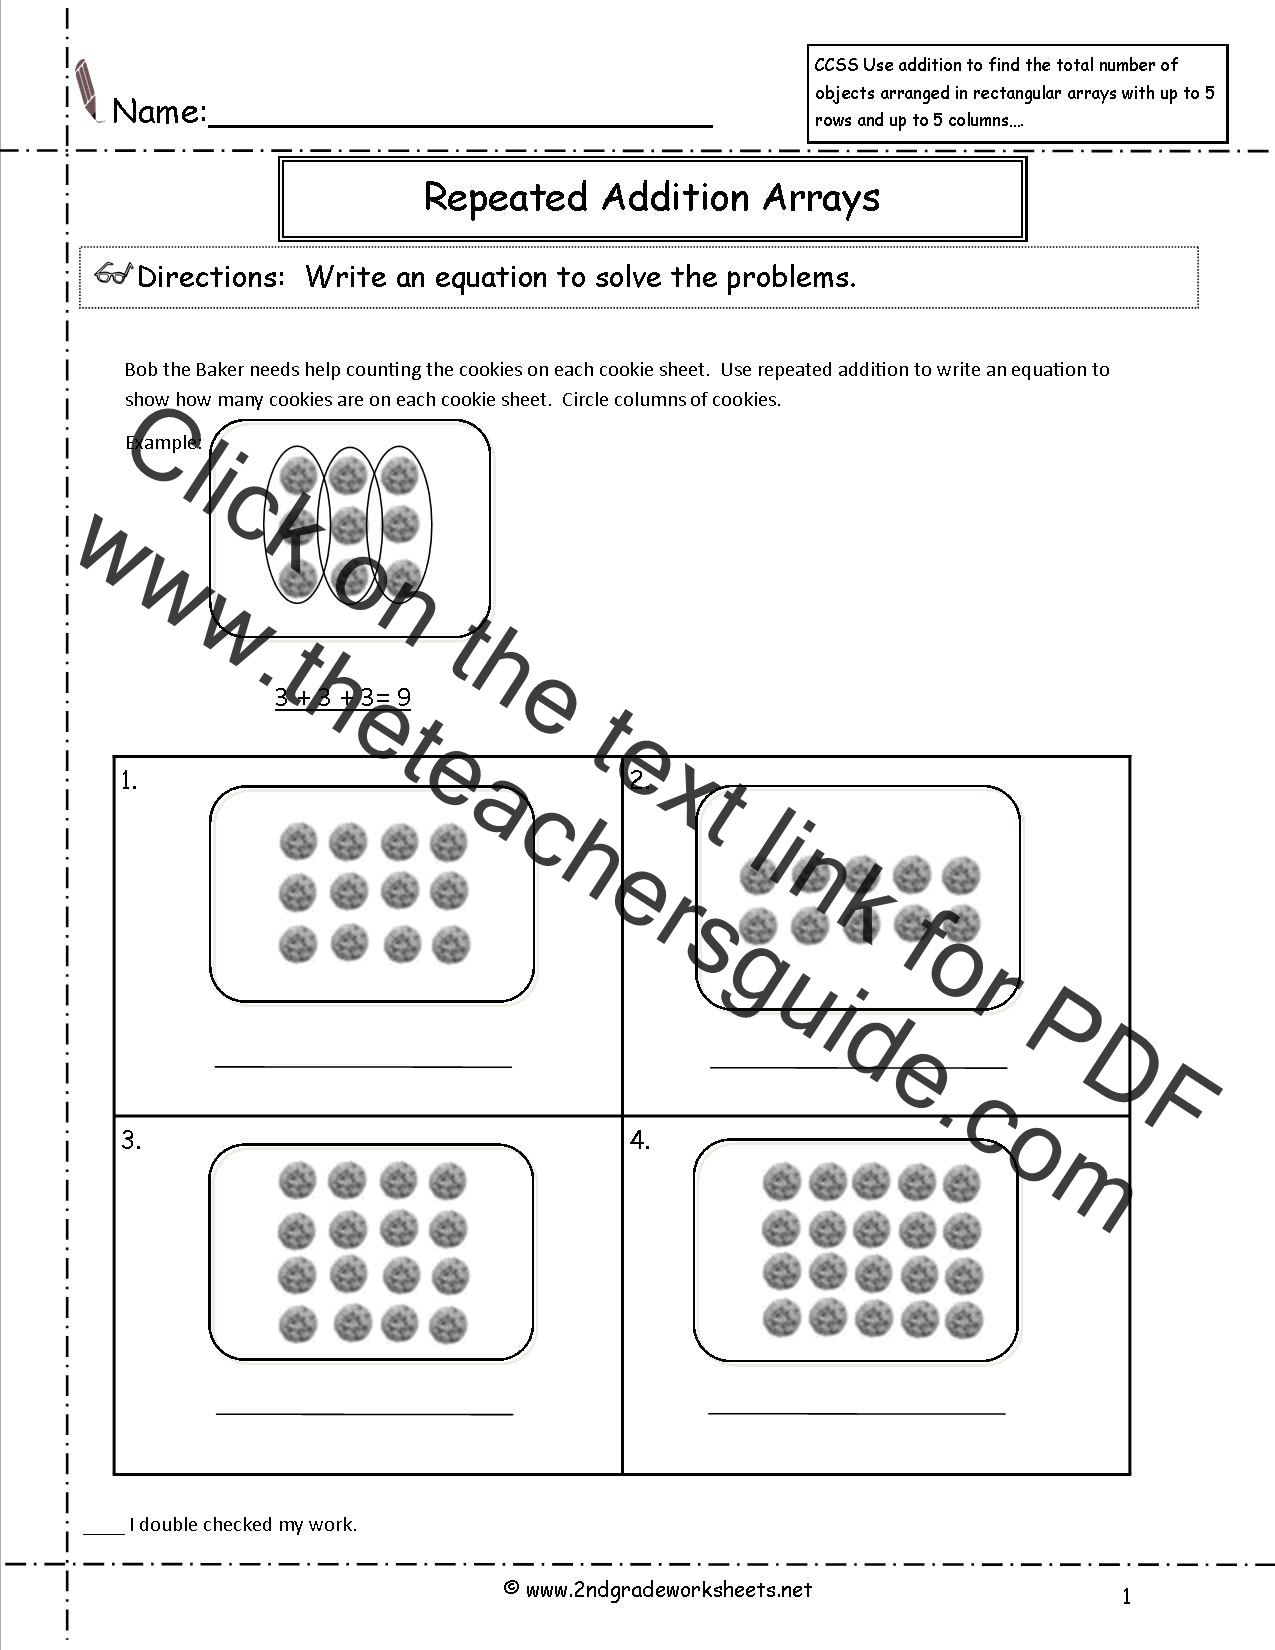 worksheet Math Models Worksheets 2nd grade math common core state standards worksheets oa 4 worksheets